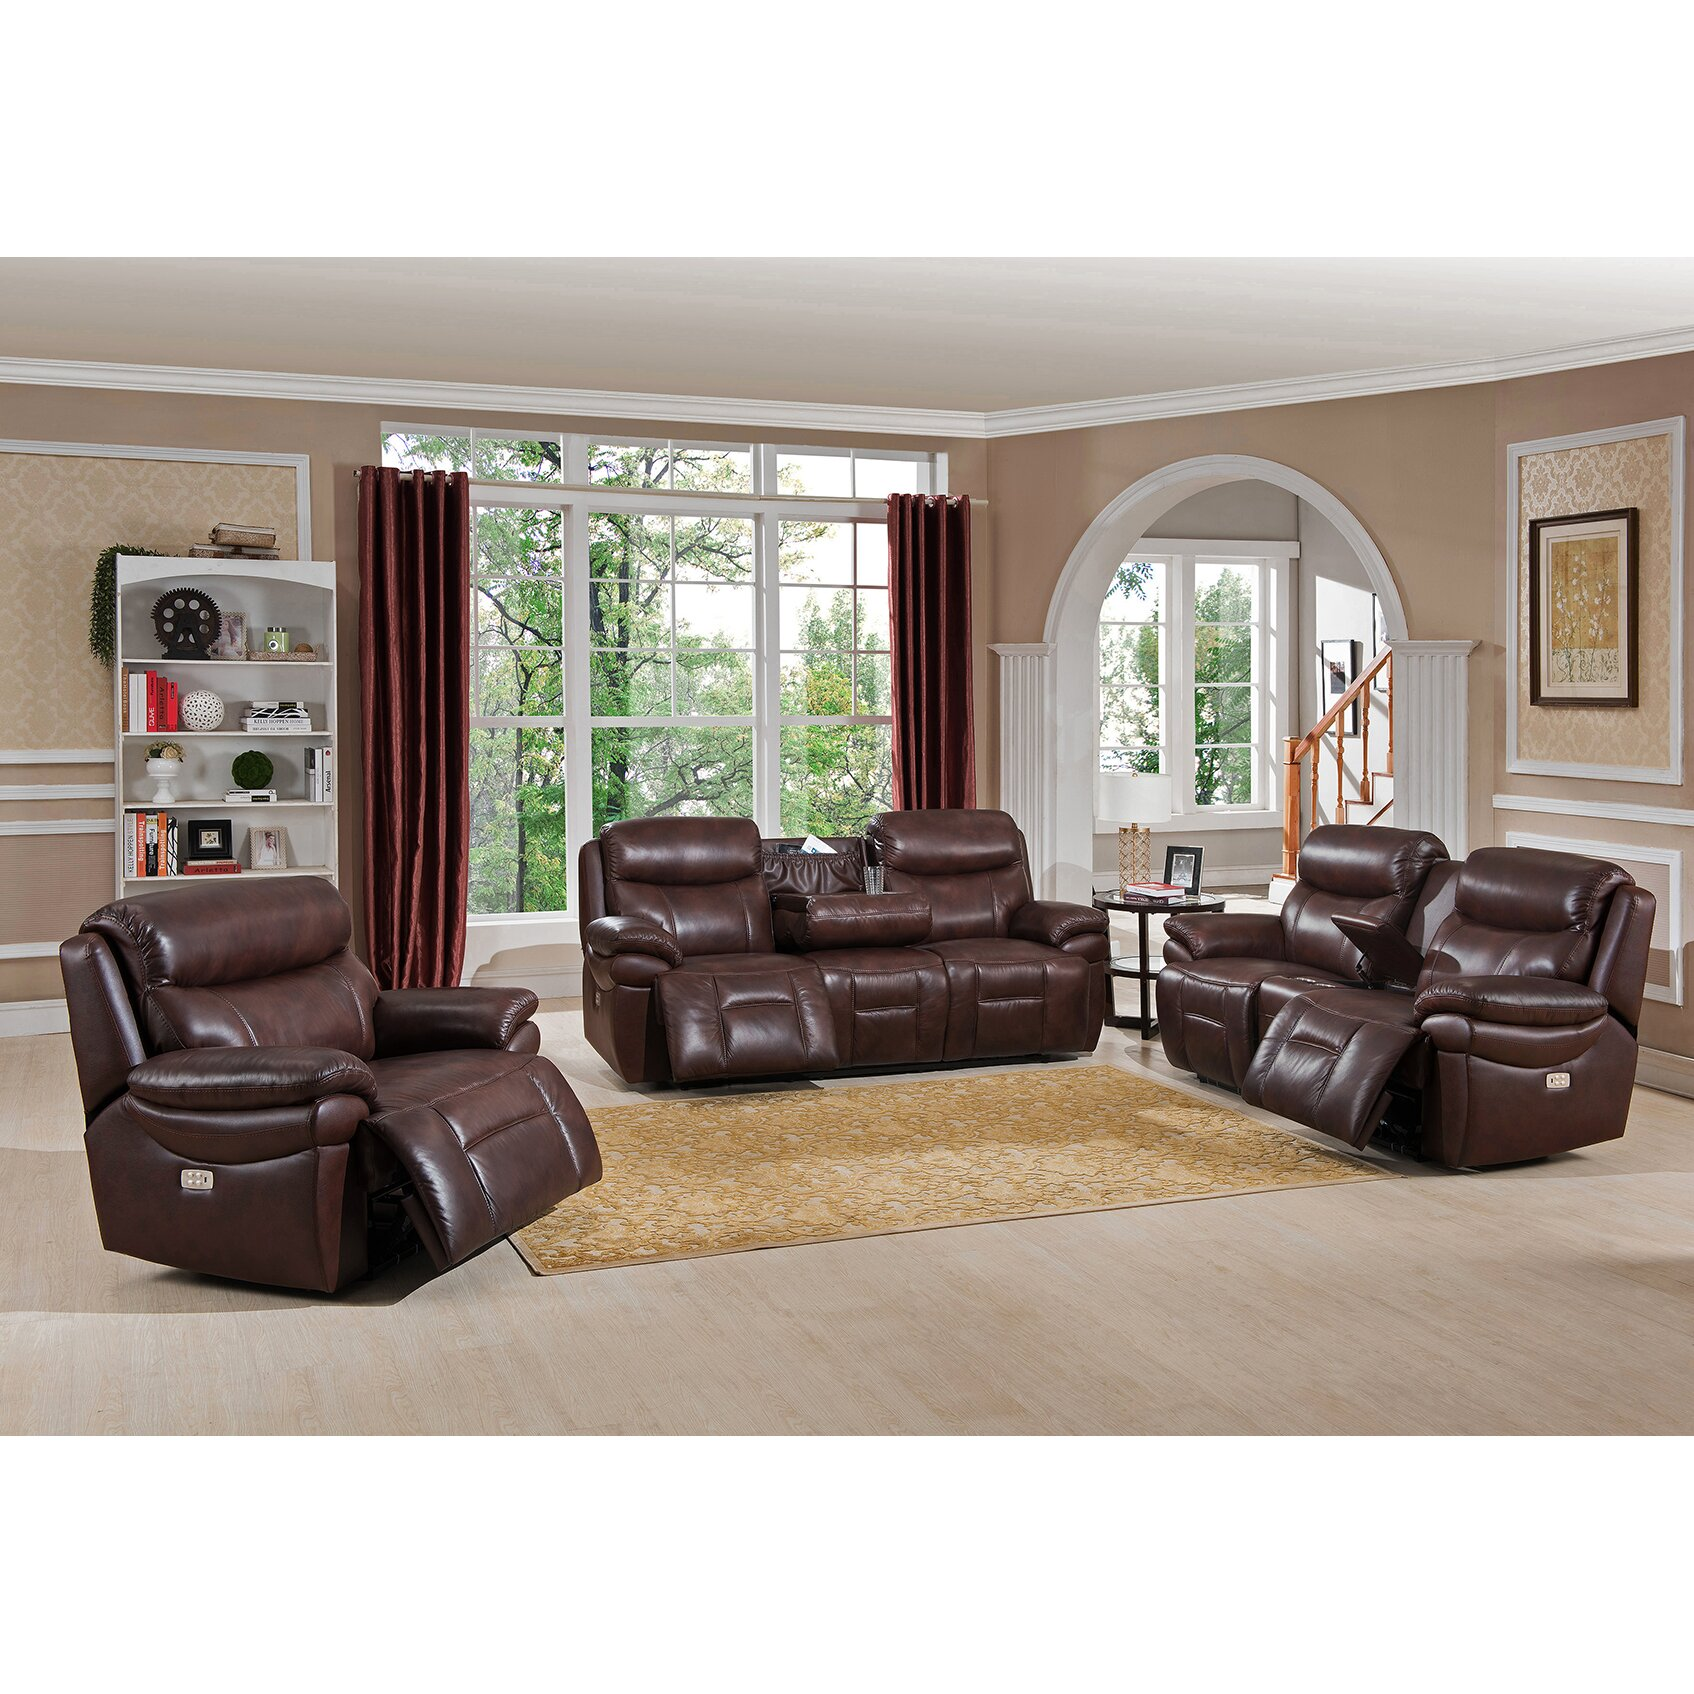 Amax sanford 3 piece leather power reclining living room for 3 piece living room furniture